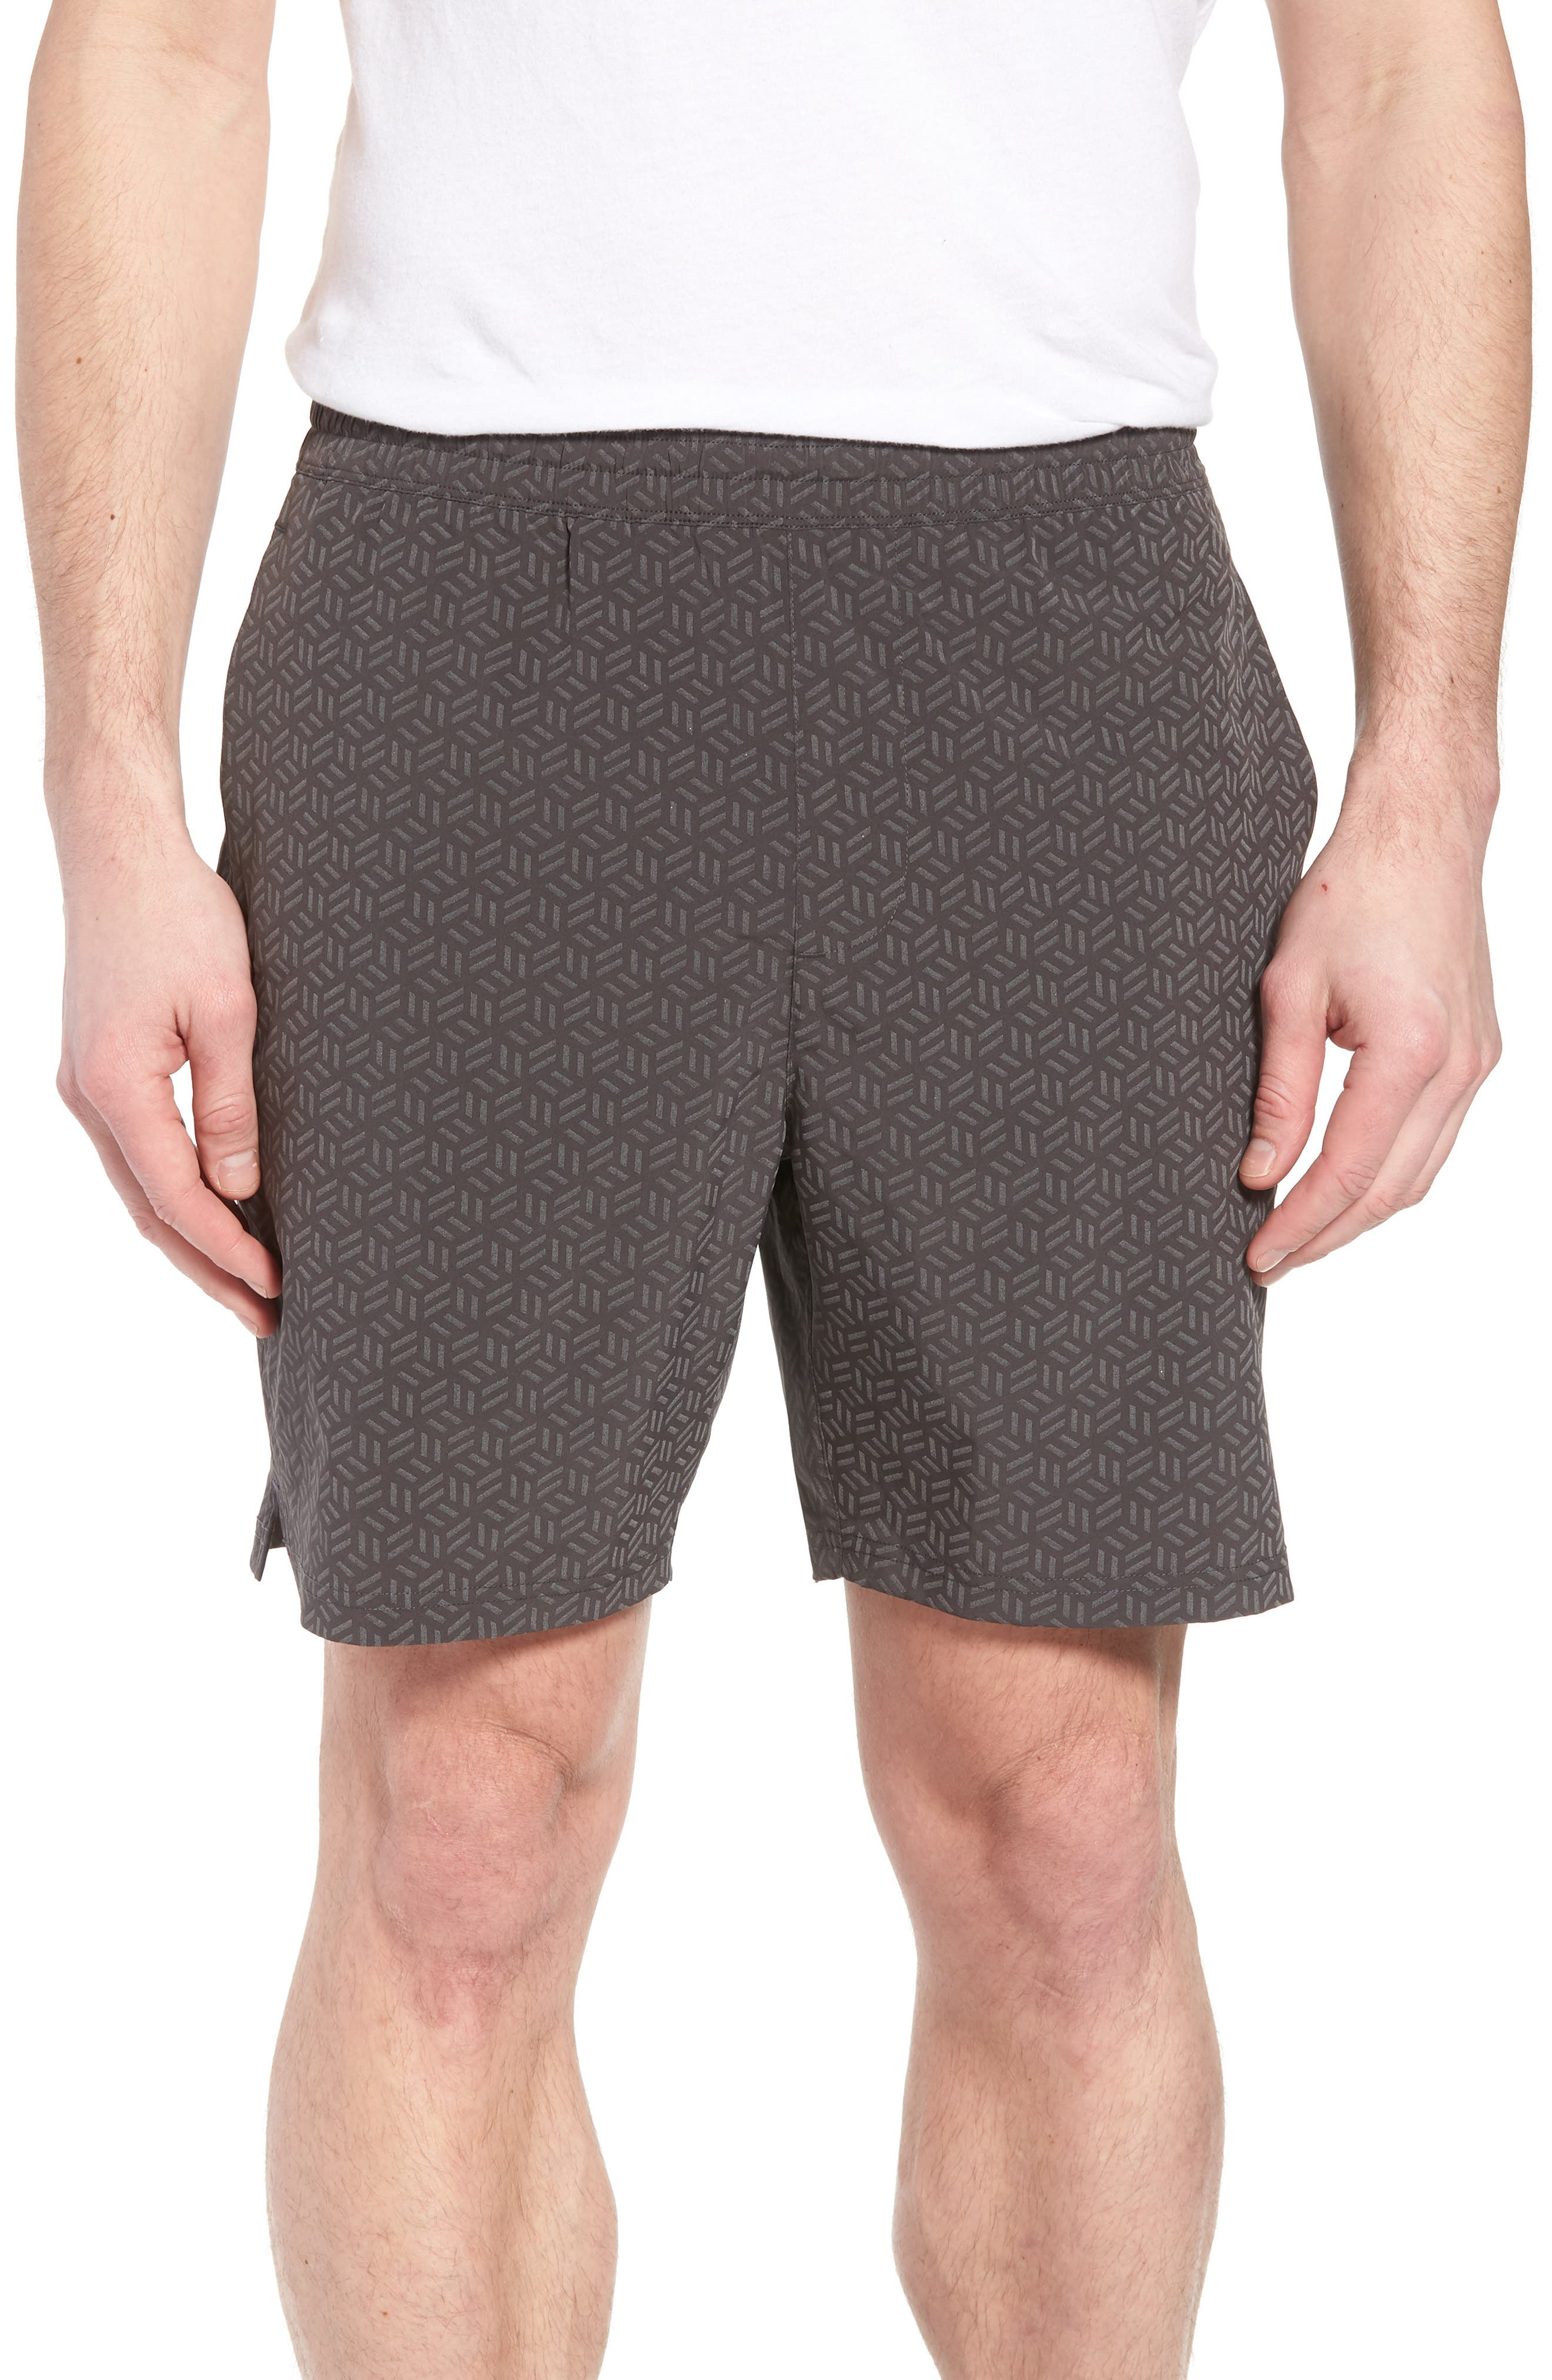 Stretch Shorts,                         Main,                         color, REFLECTIVE CUBE GEO